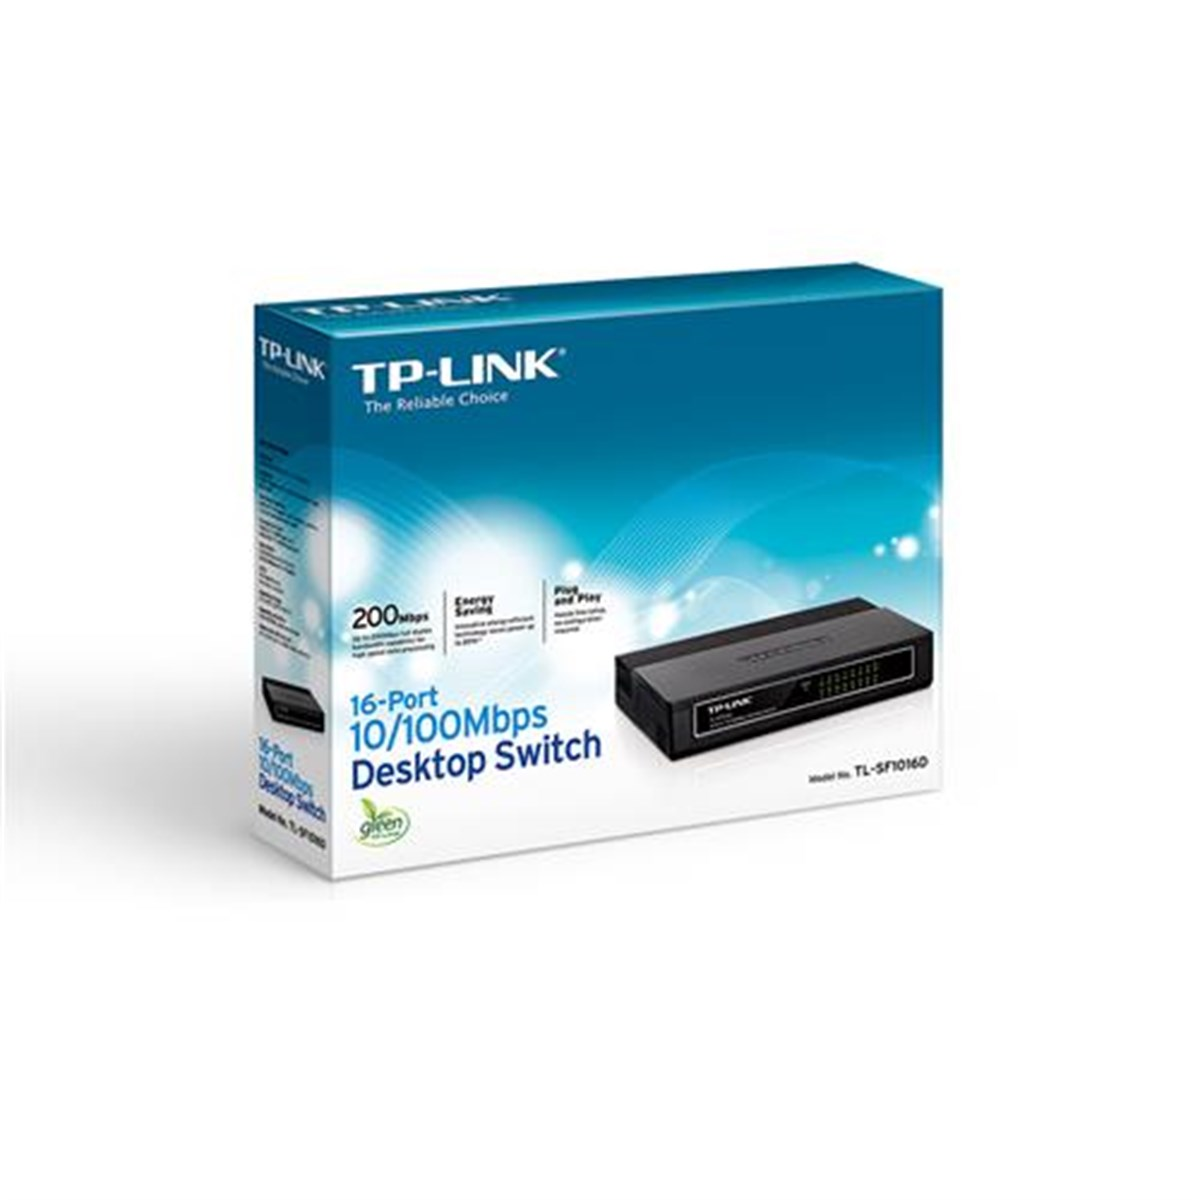 TP-LINK TL-SF1016D 16 PORT 10/100 FAST ETHERNET DESKTOP SWITCH